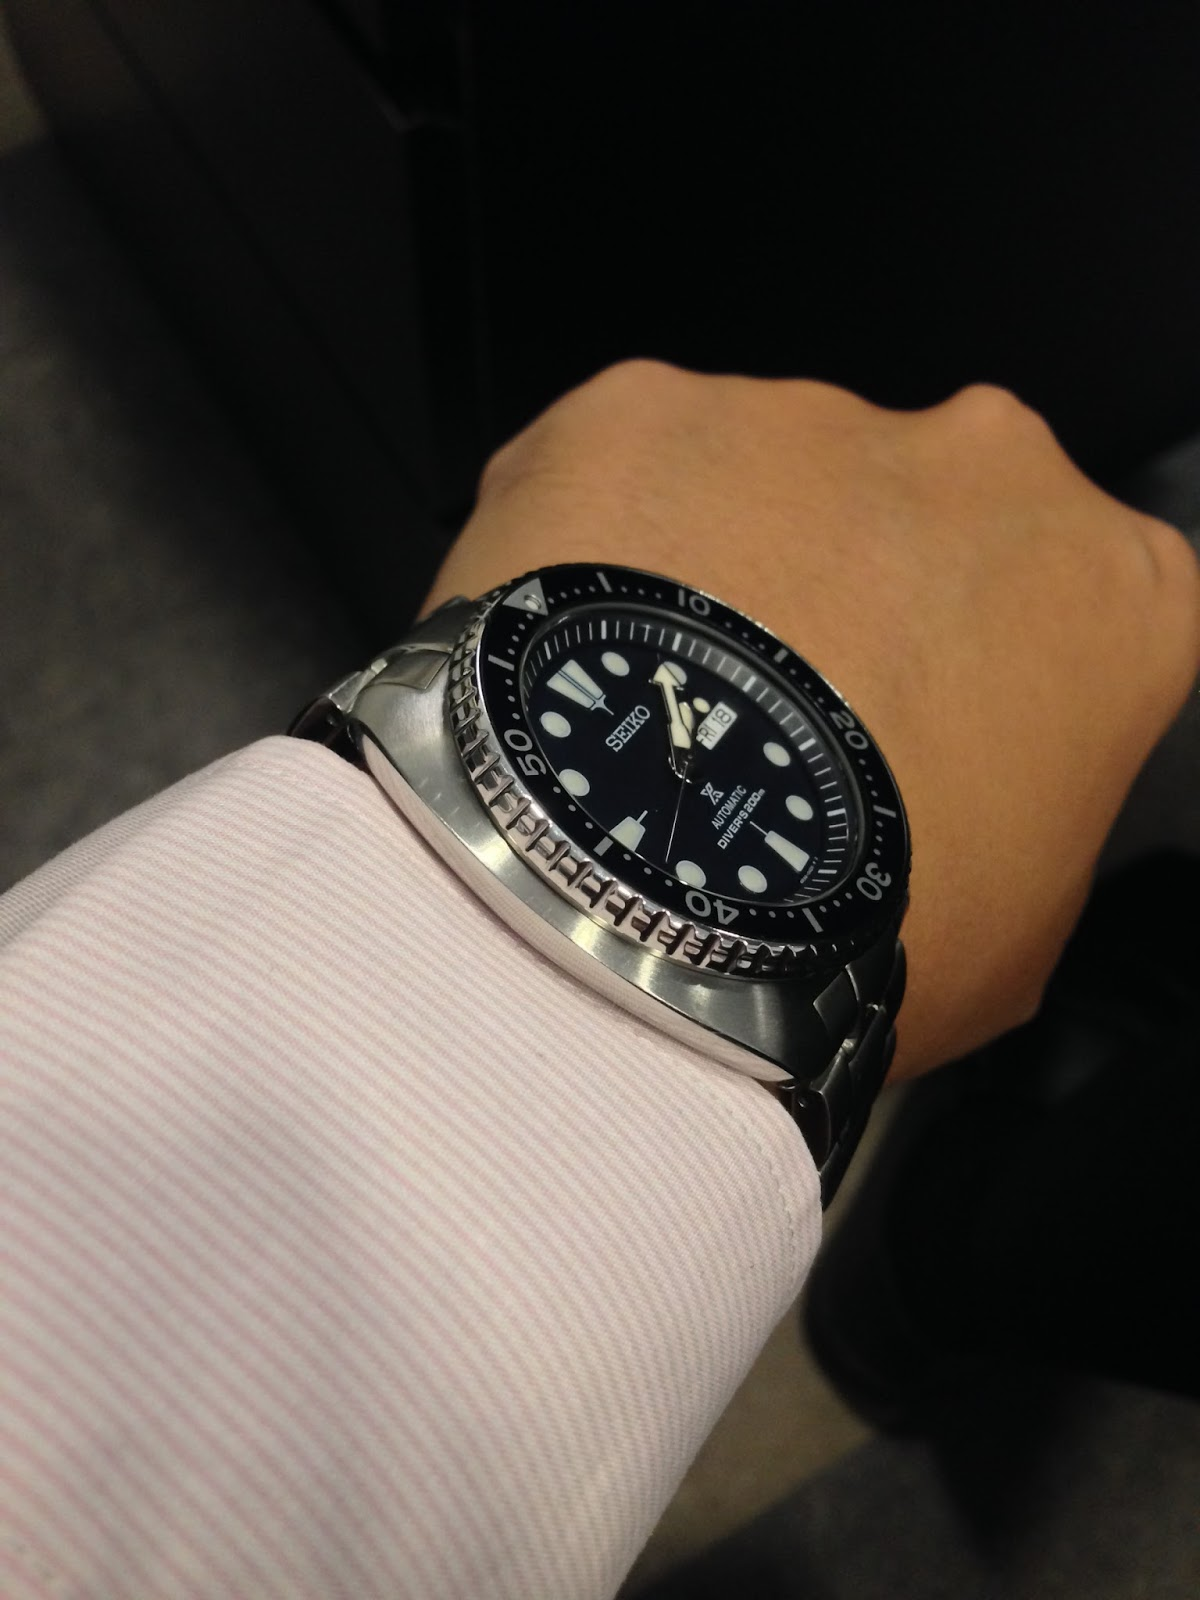 A Fortnight Review: 2 Weeks On The Wrist With The Seiko